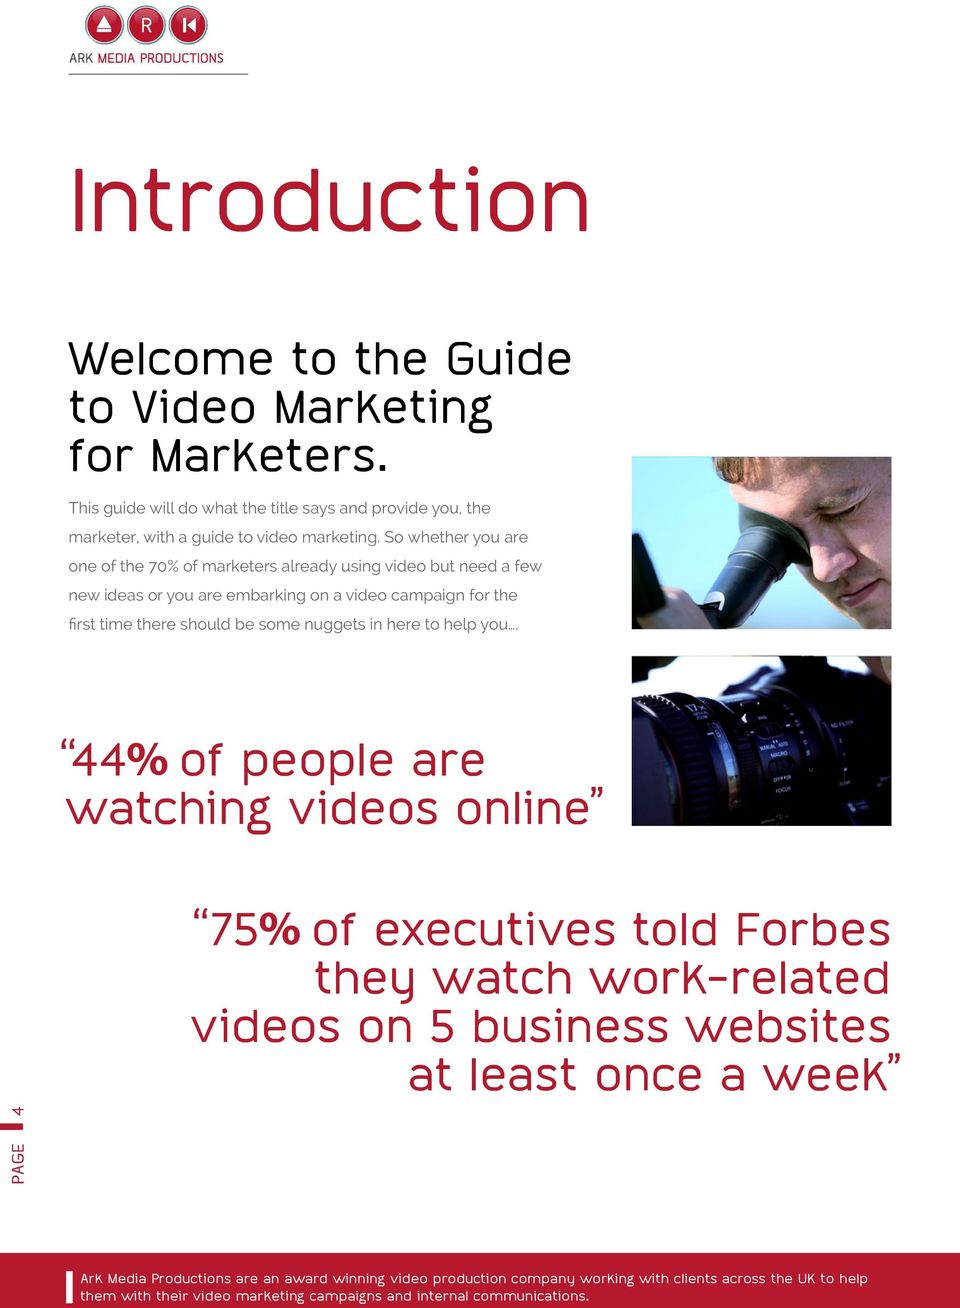 So whether you are one of the 70% of marketers already using video but need a few new ideas or you are embarking on a video